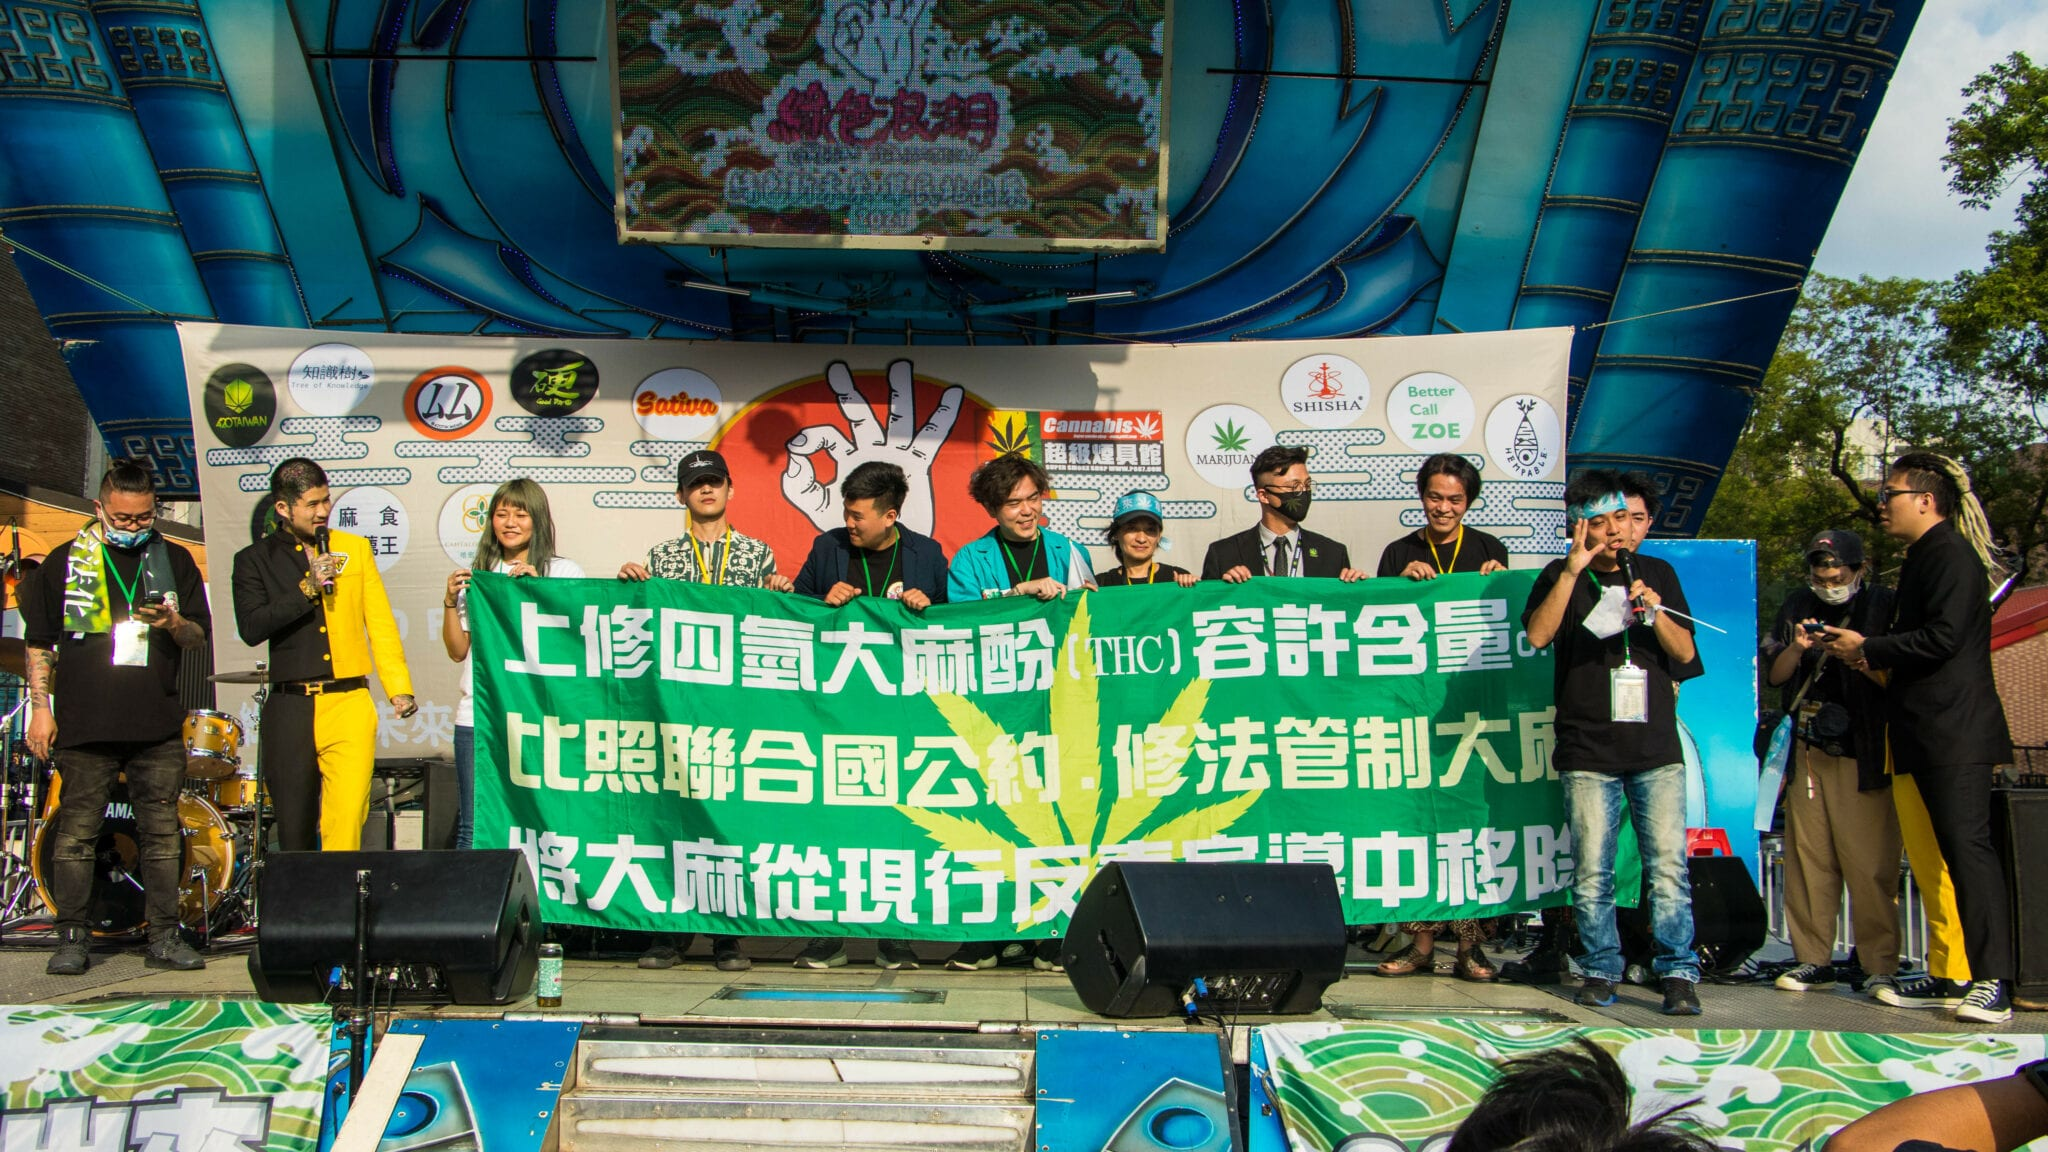 Activists and experts push for legal cannabis in Taiwan - stage